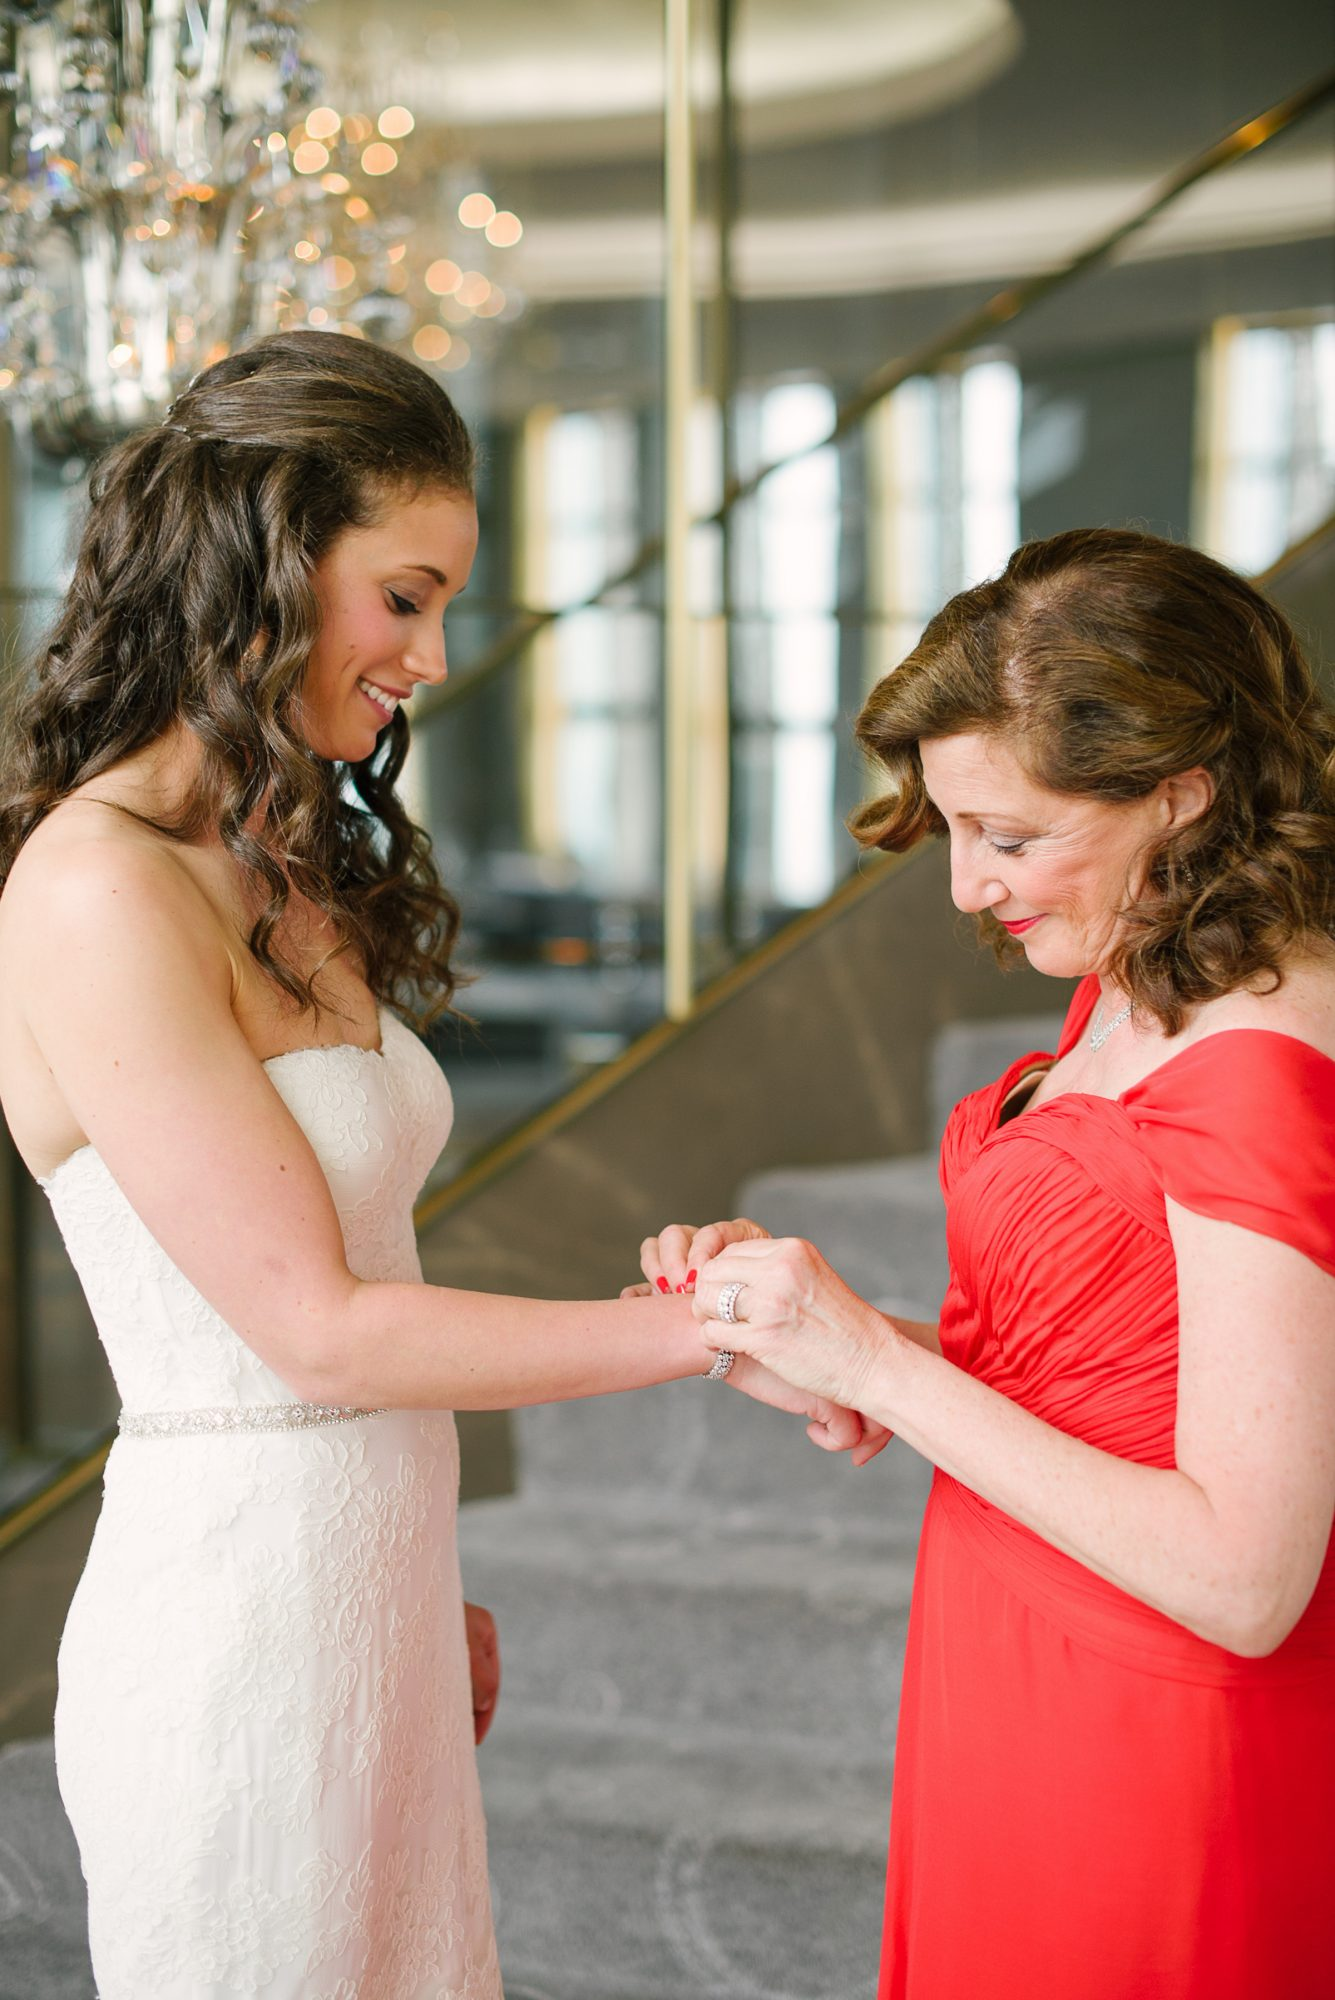 A Mom Helping Her Daughter with Her Wedding Jewelry